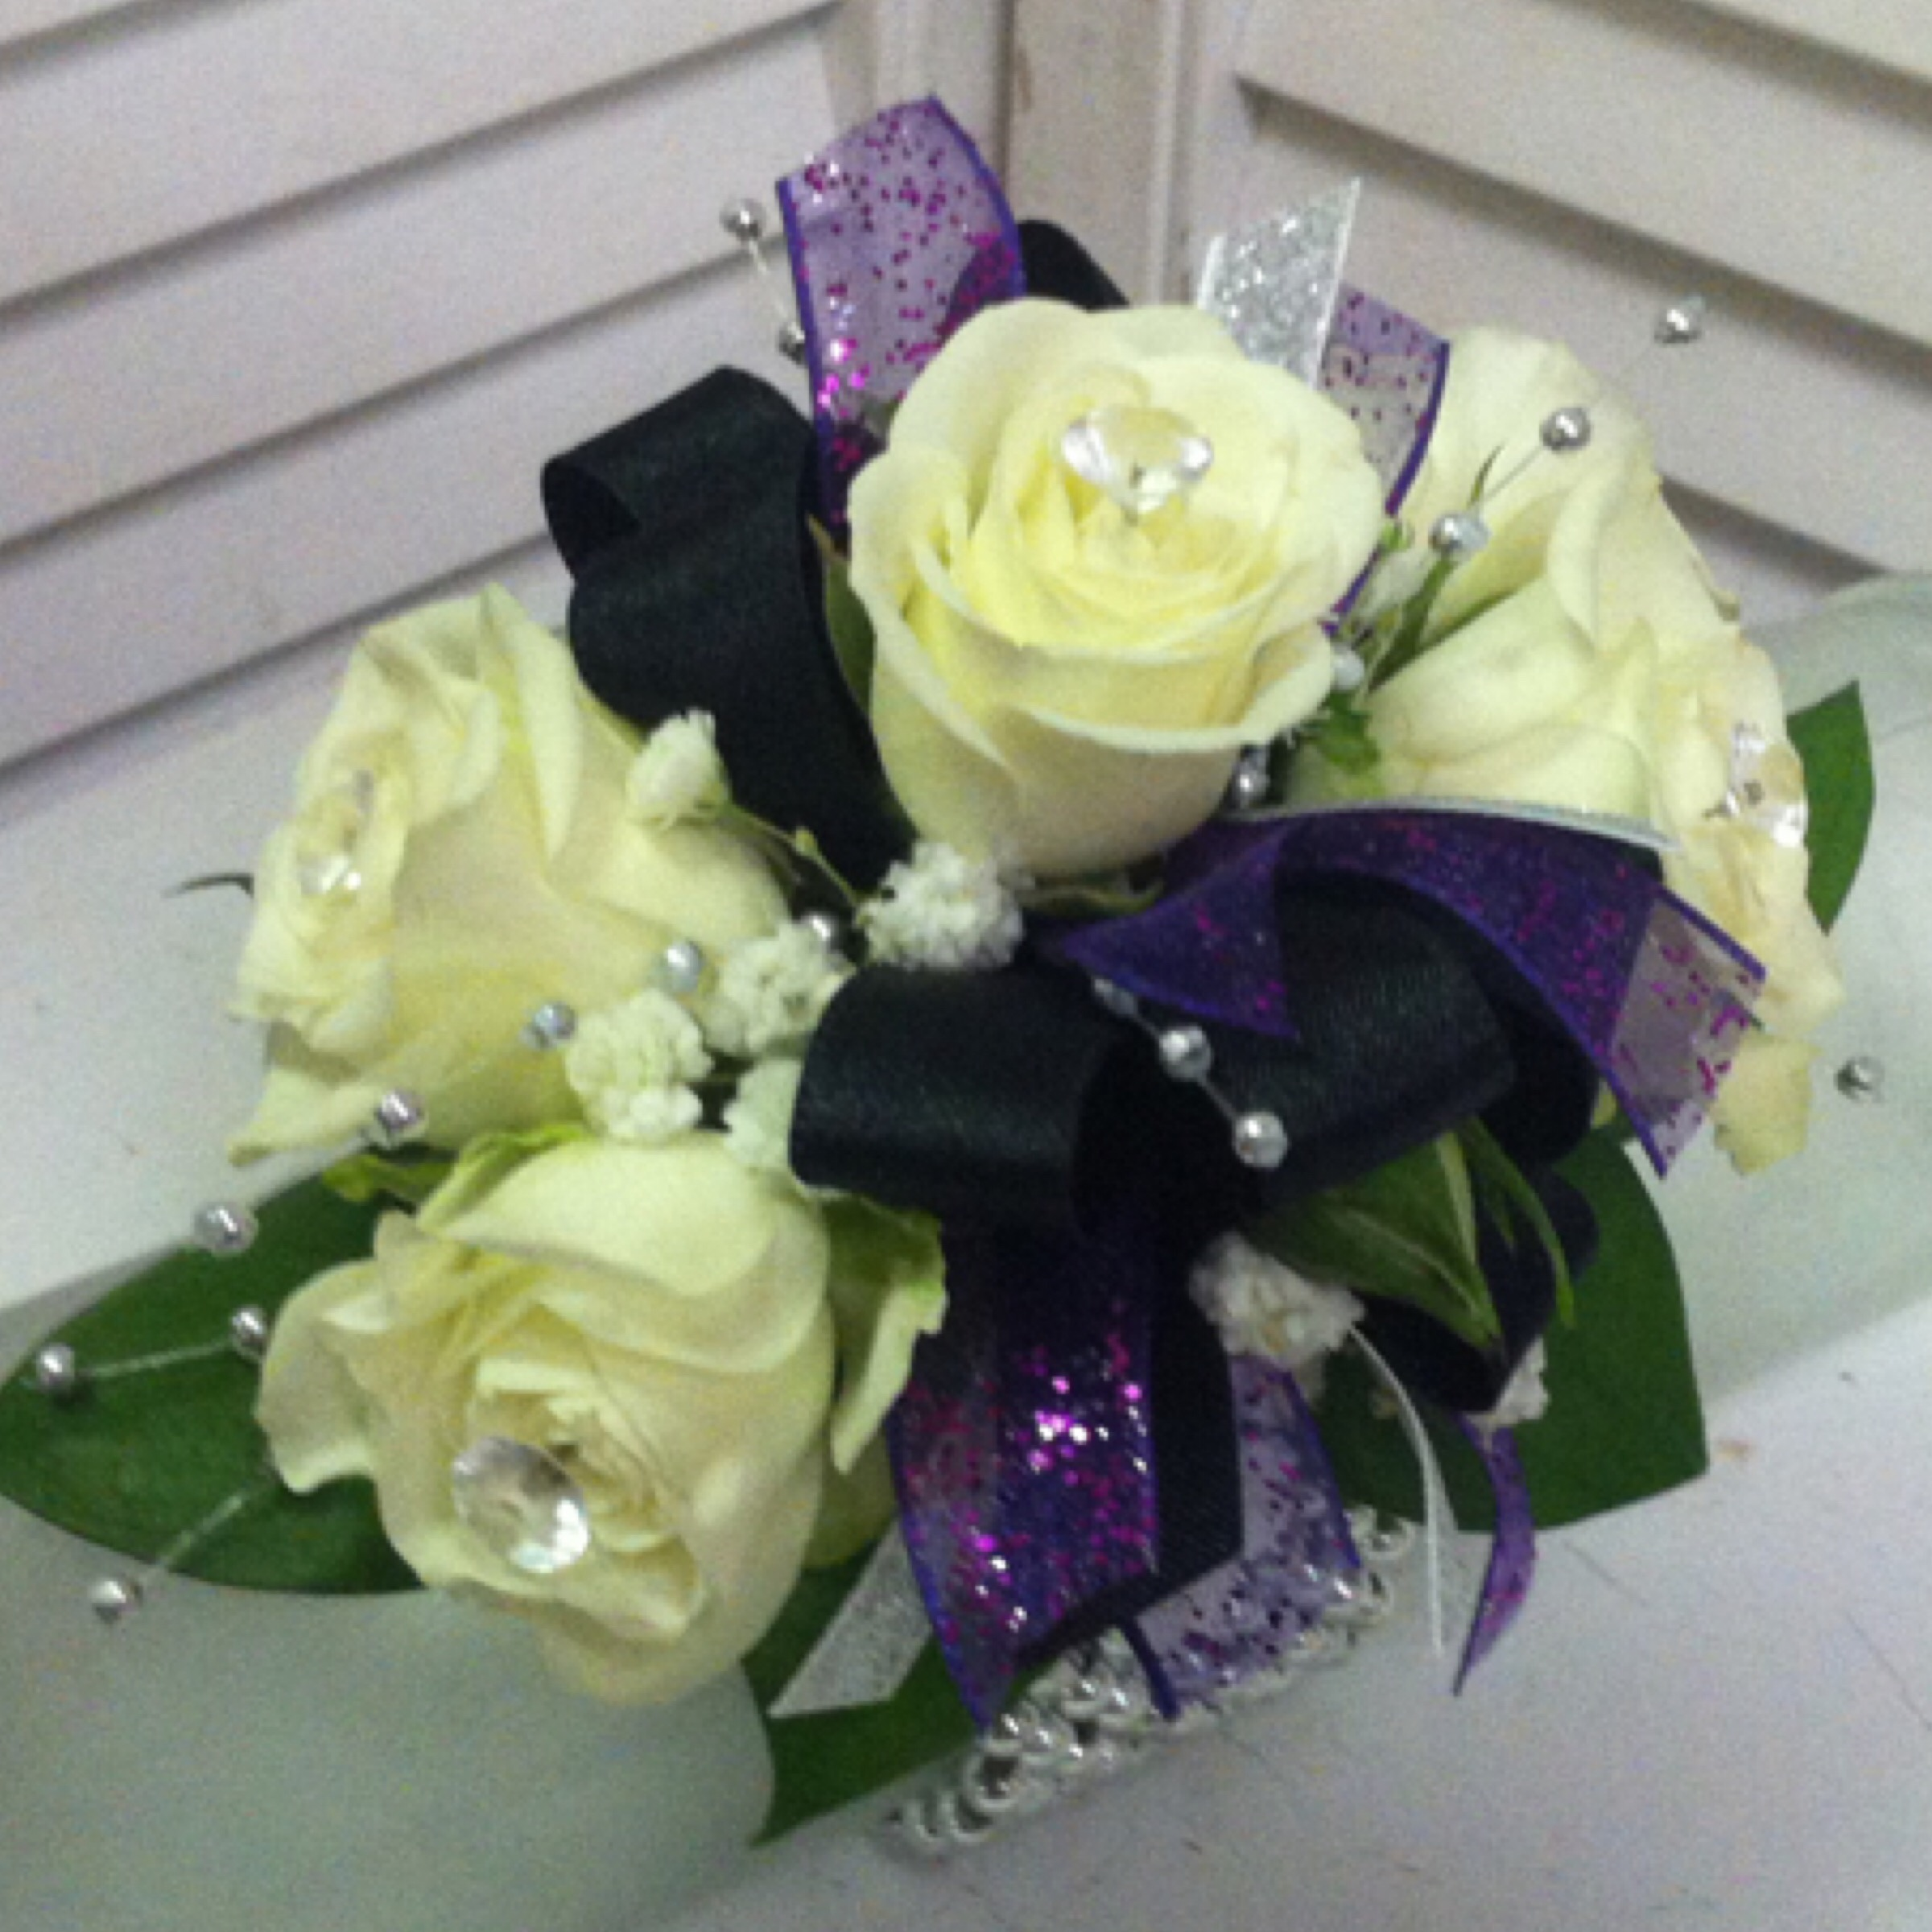 Standard Corsage (25) with Beads (1) $26